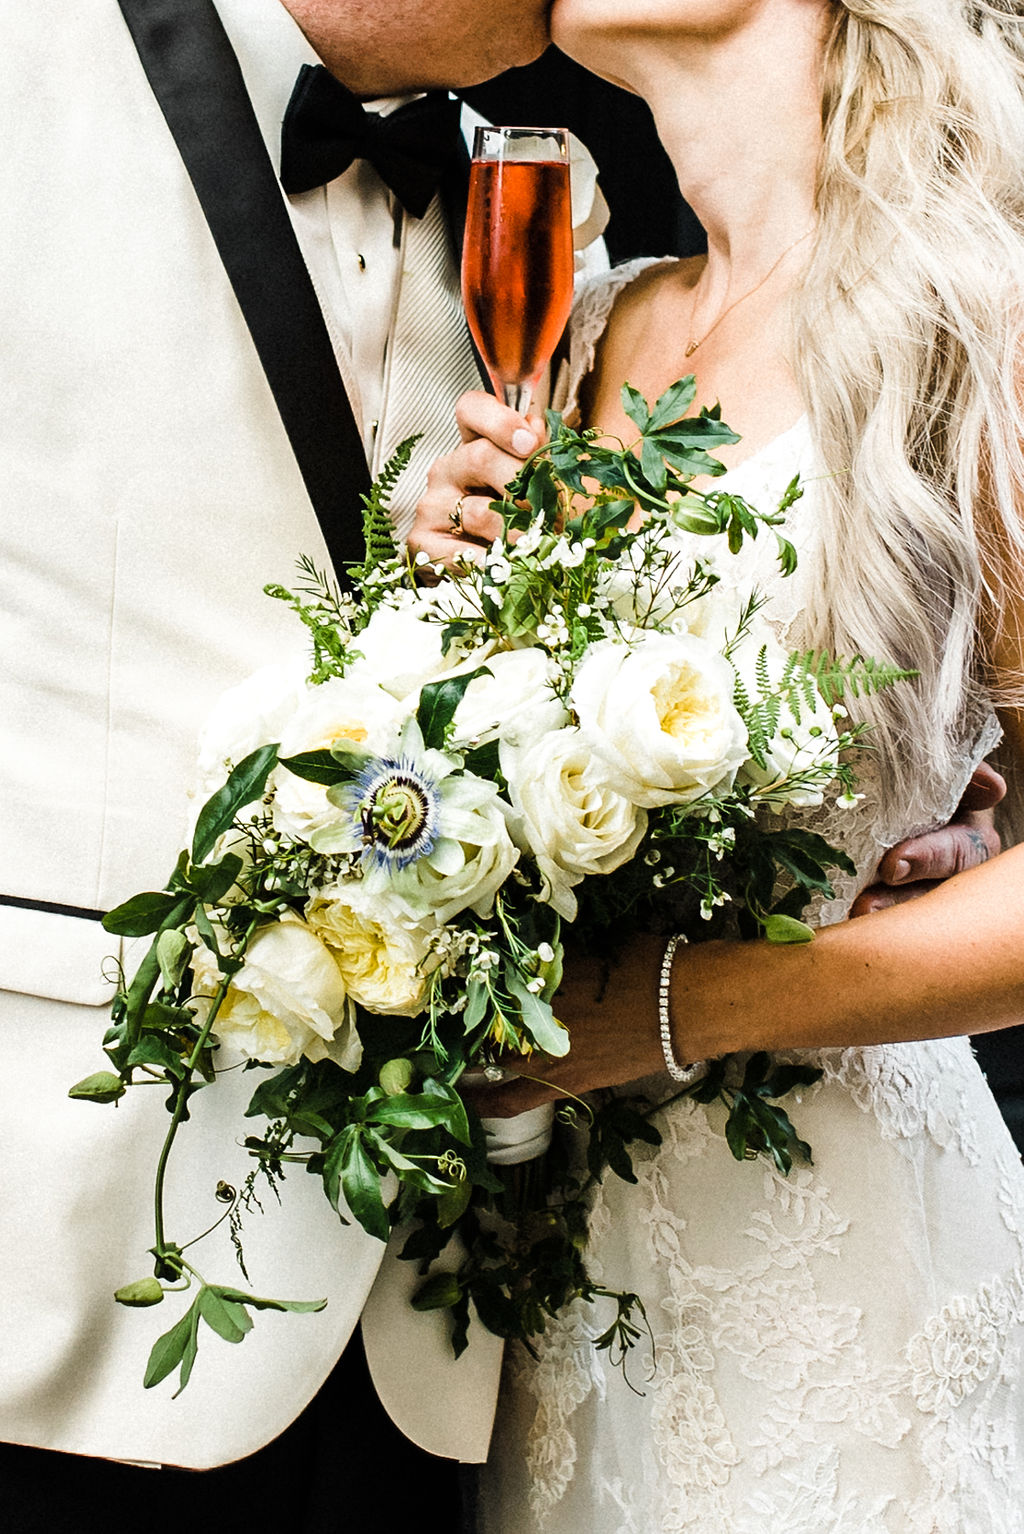 Bride bouquet with white, greens and blue flowers. - Pearl Weddings & Events